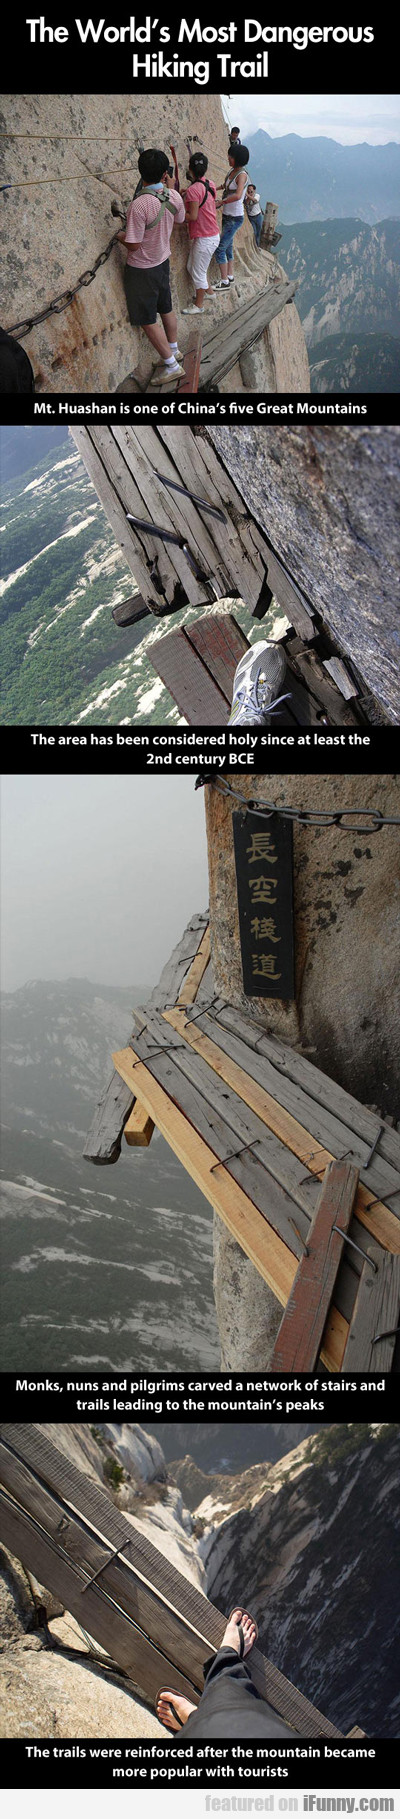 The World's Most Dangerous Hiking Trail...